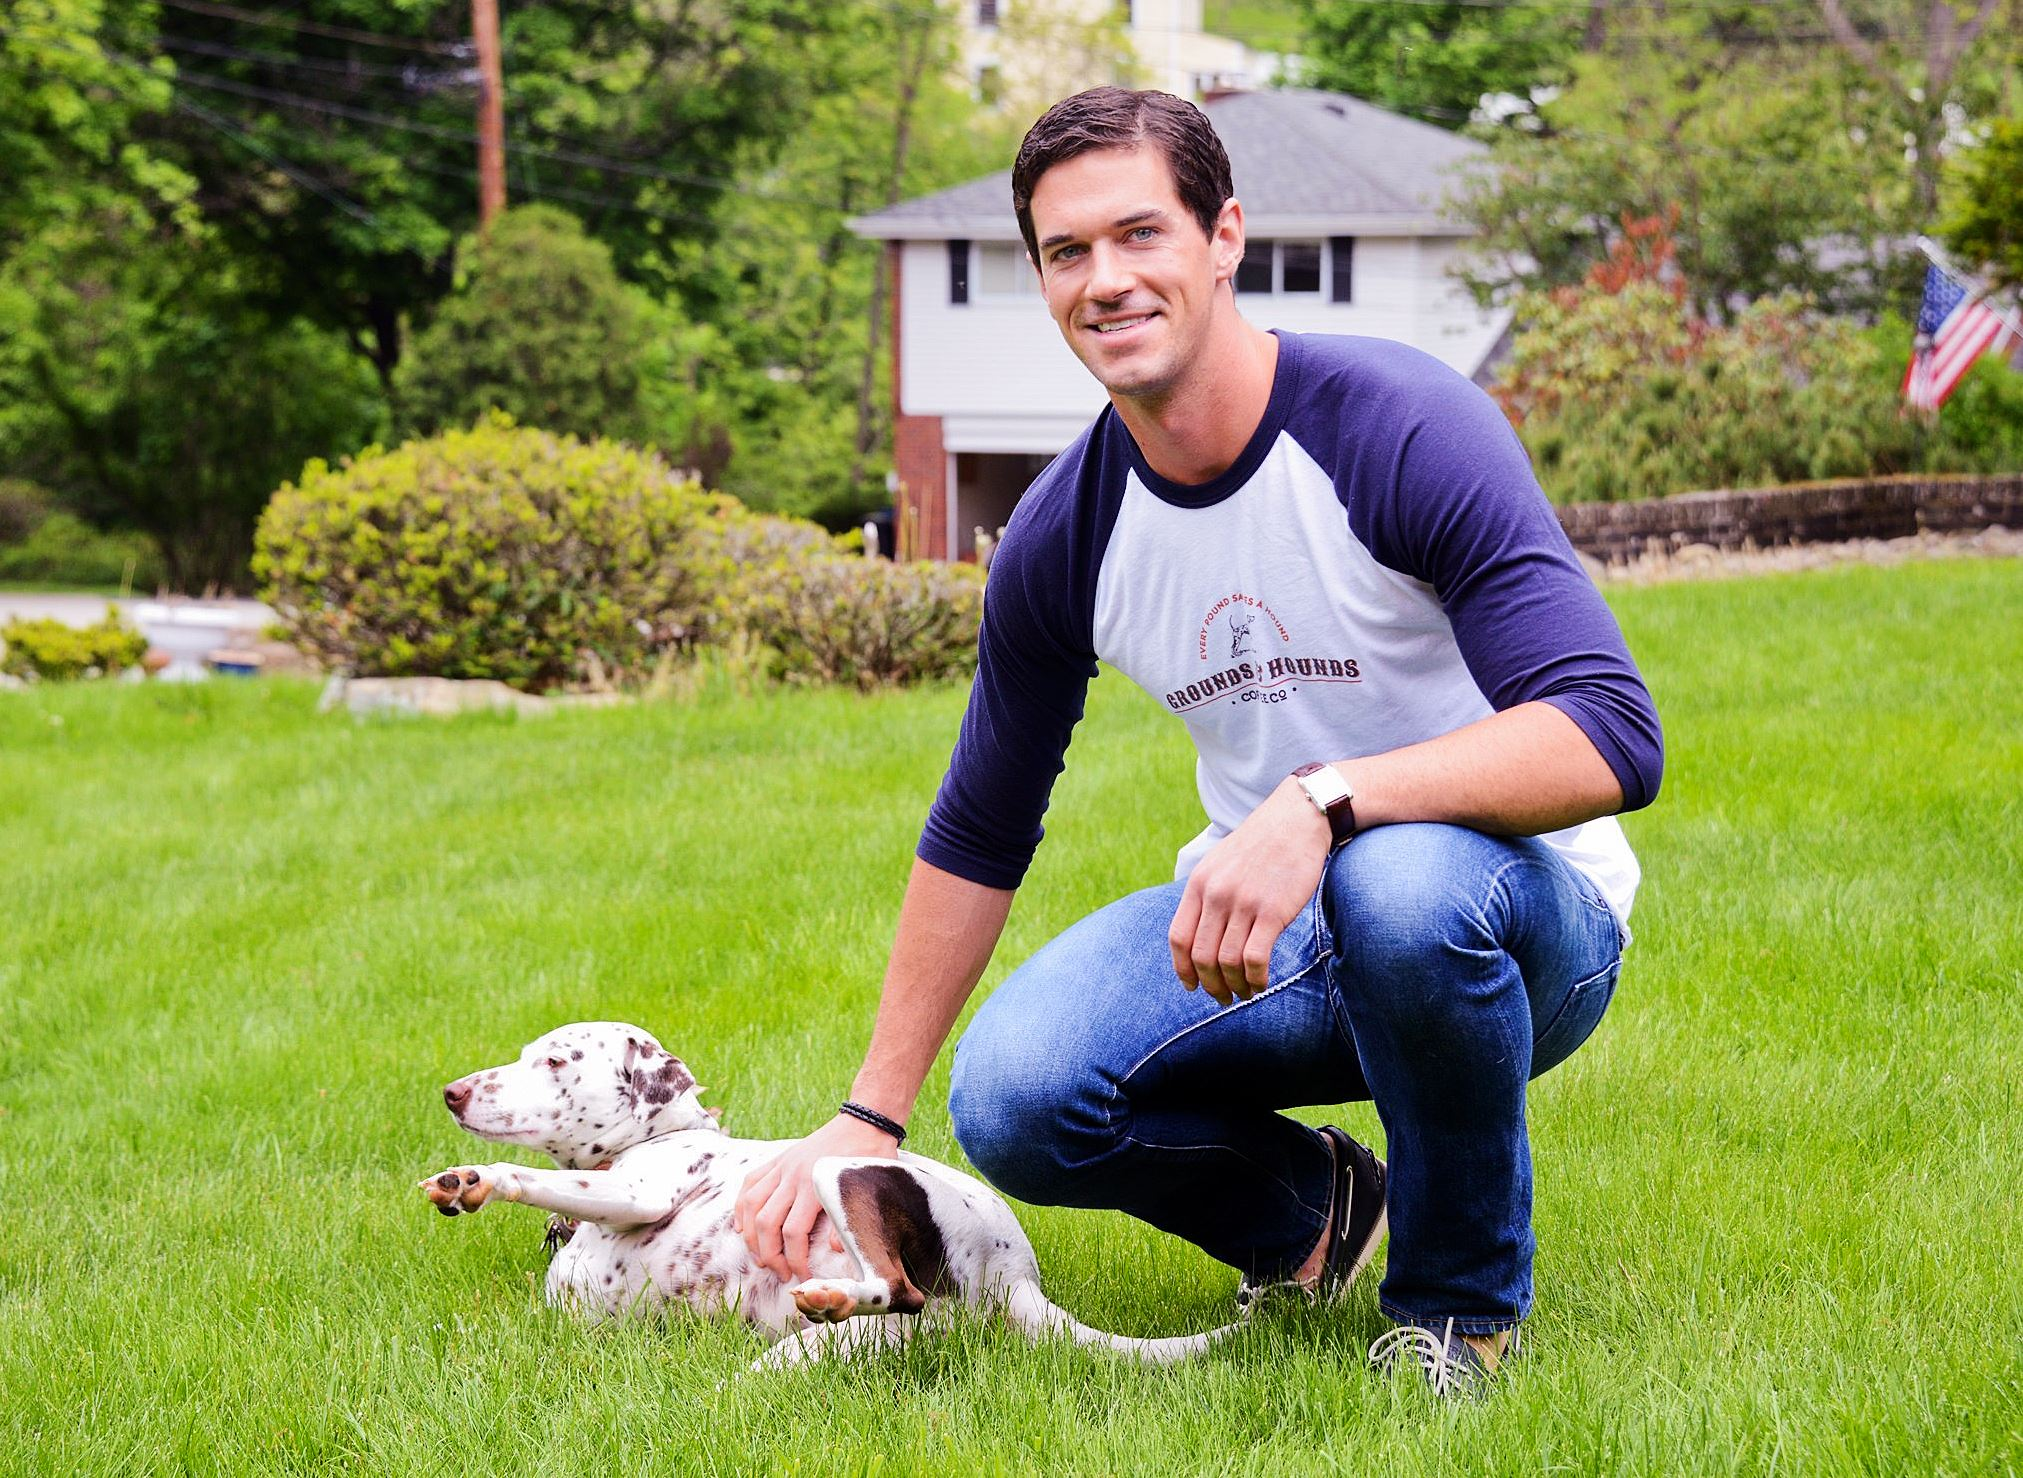 20140520CoffeeMag01 Jordan Karcher with his dog, a Dalmatian mix named Molly.